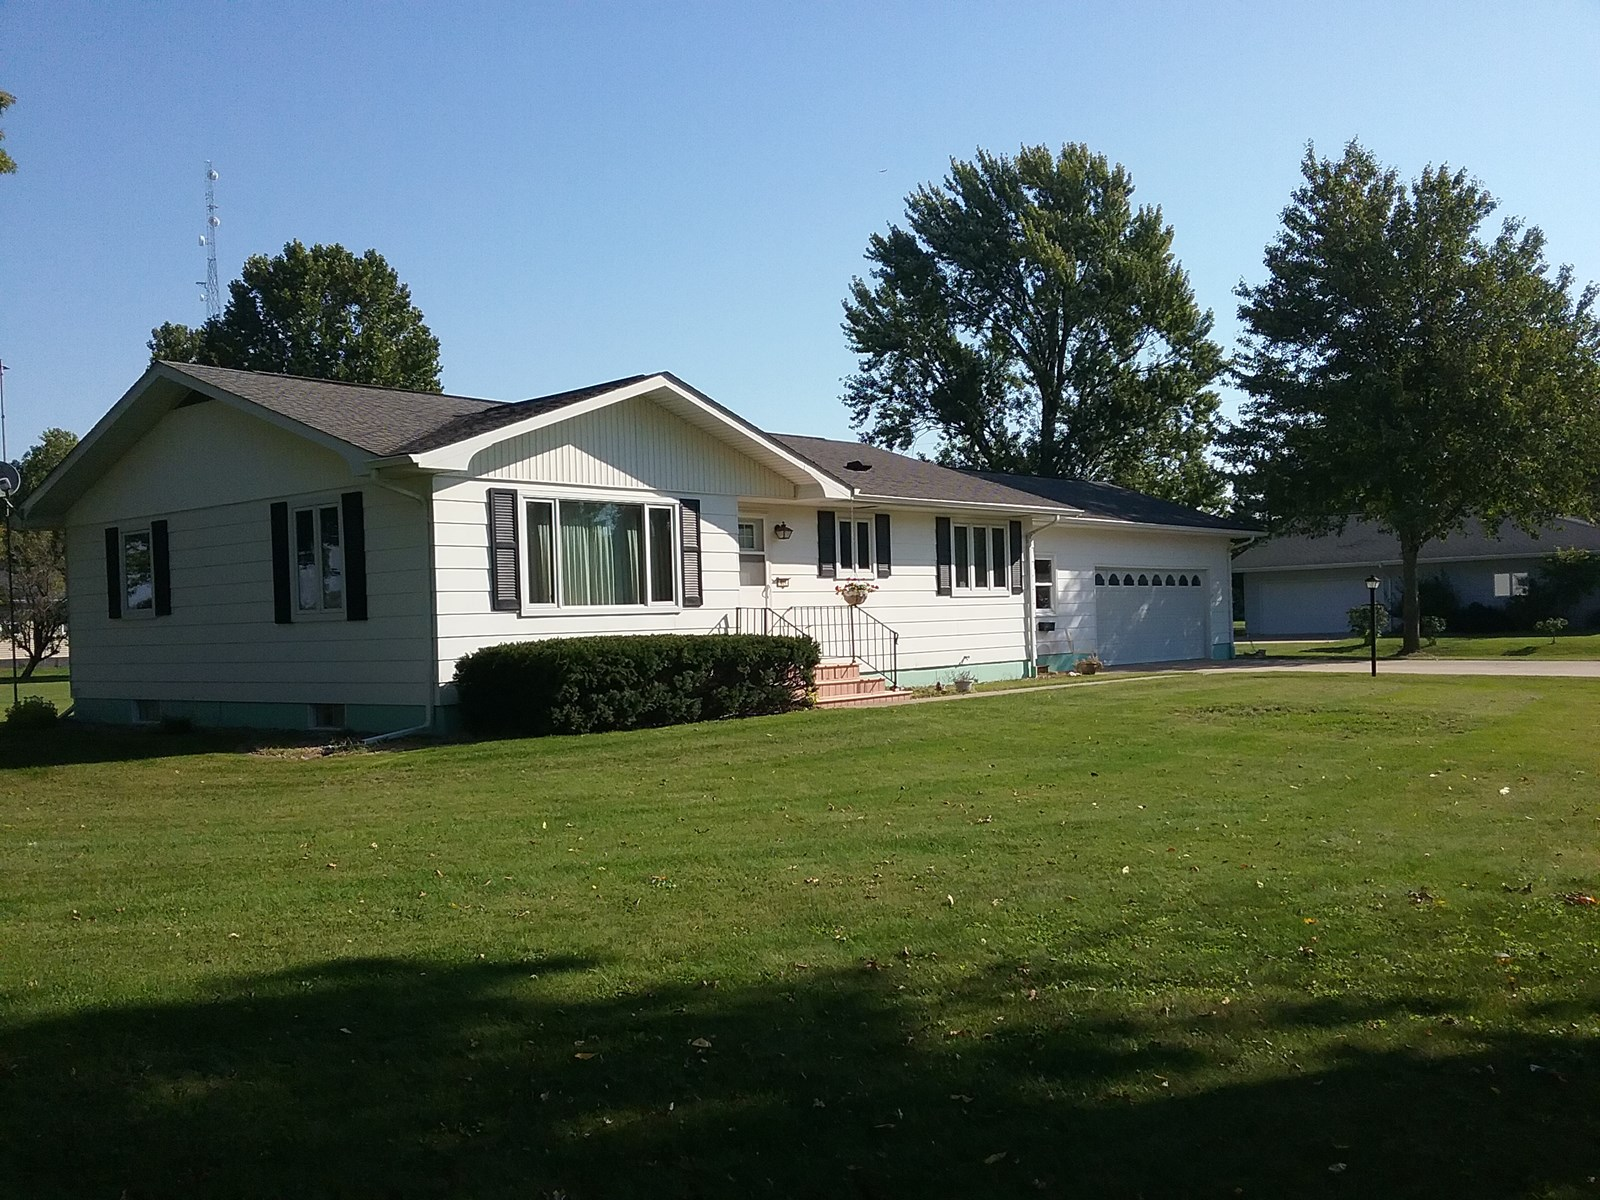 3 Bedroom Ranch-Style Home in Donnellson, Iowa